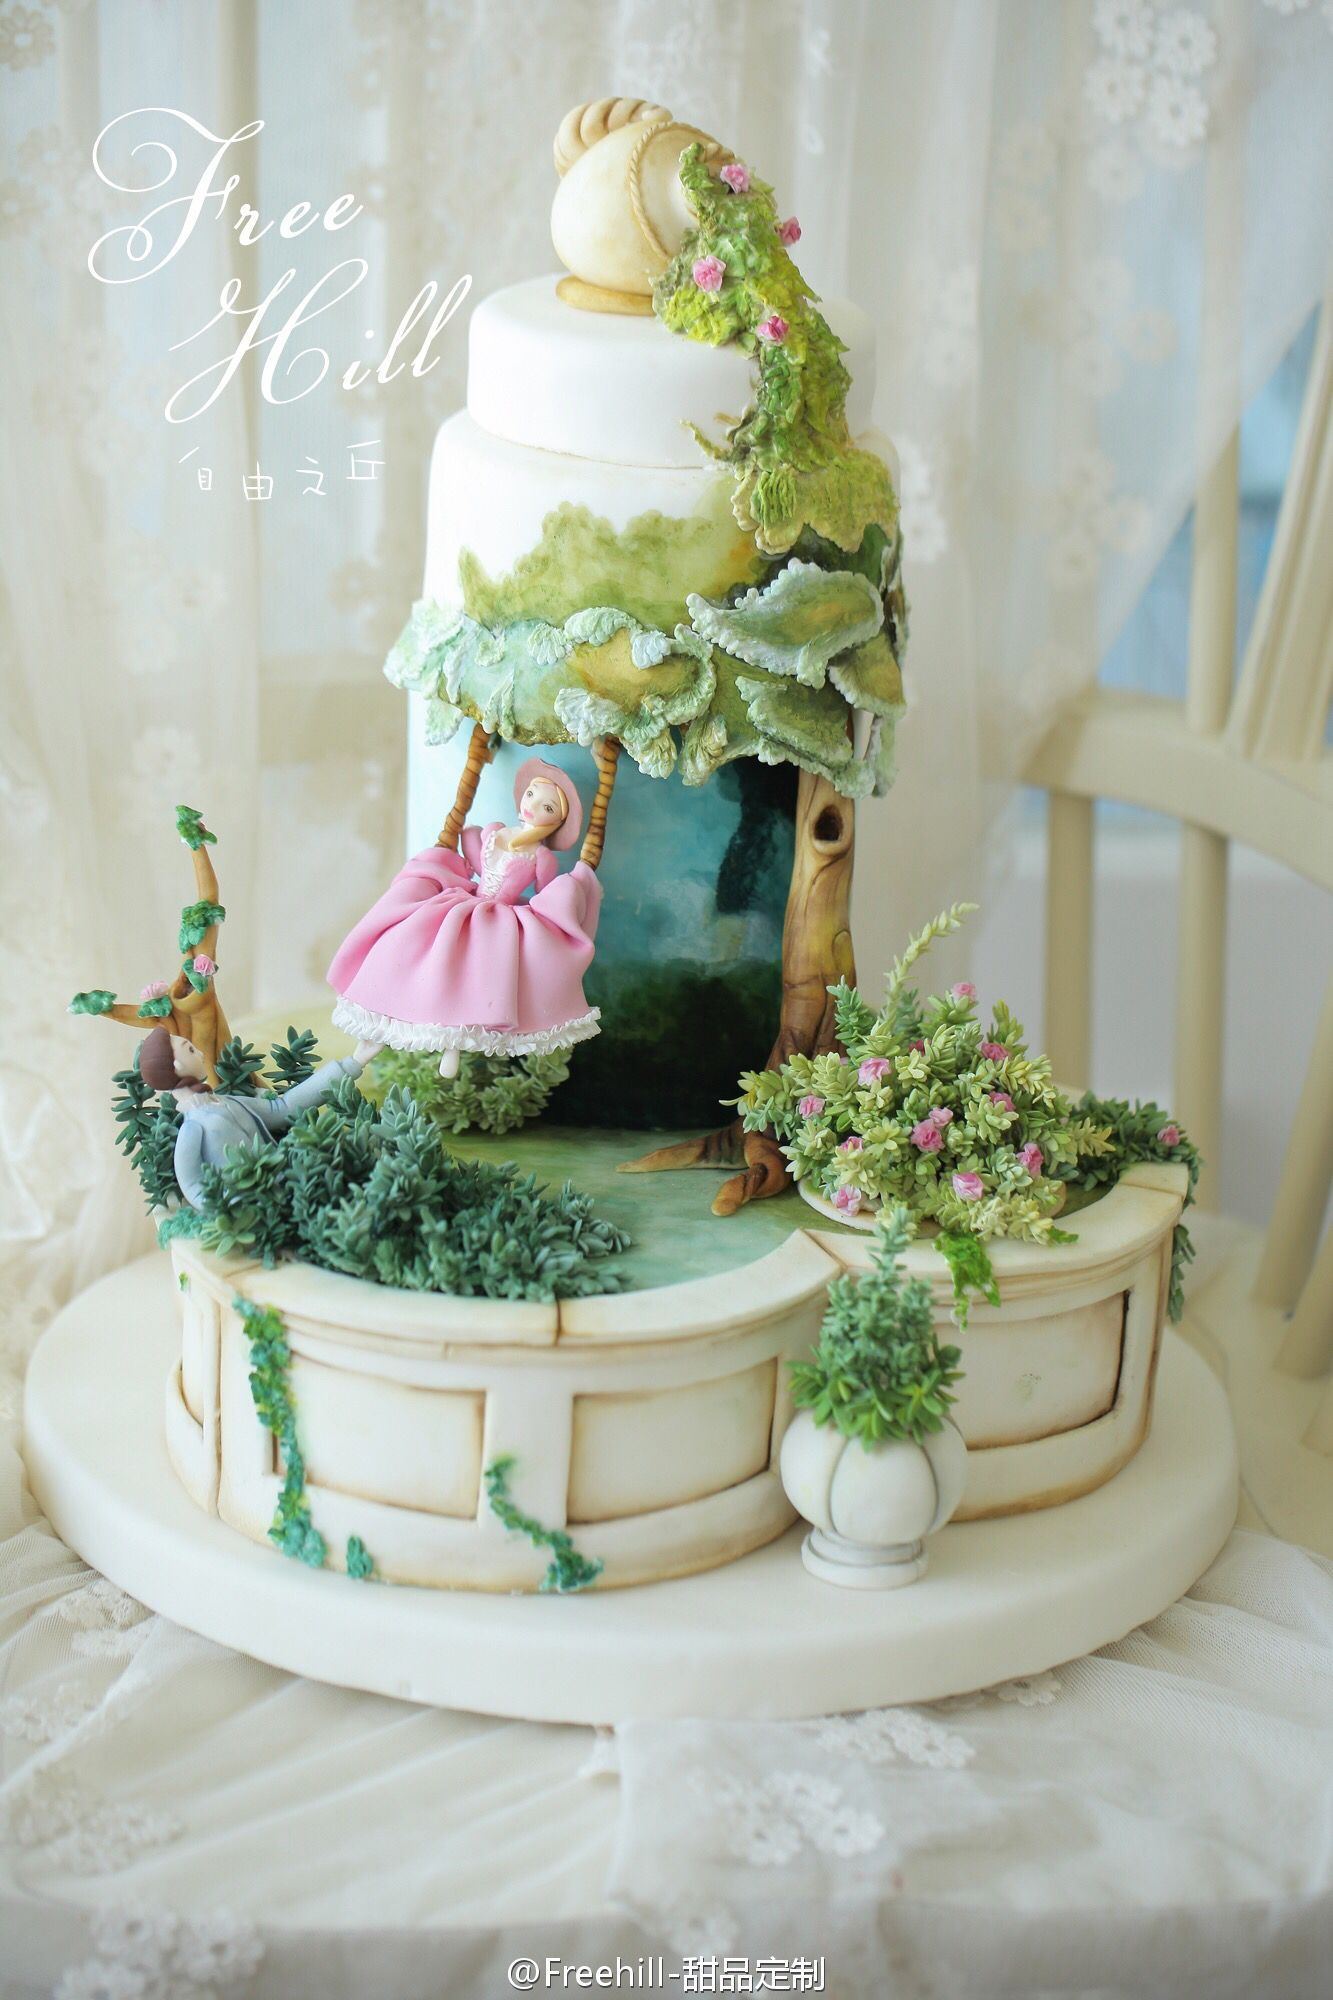 Pin by Sandy Findley on Cake | Artist cake, Garden cakes